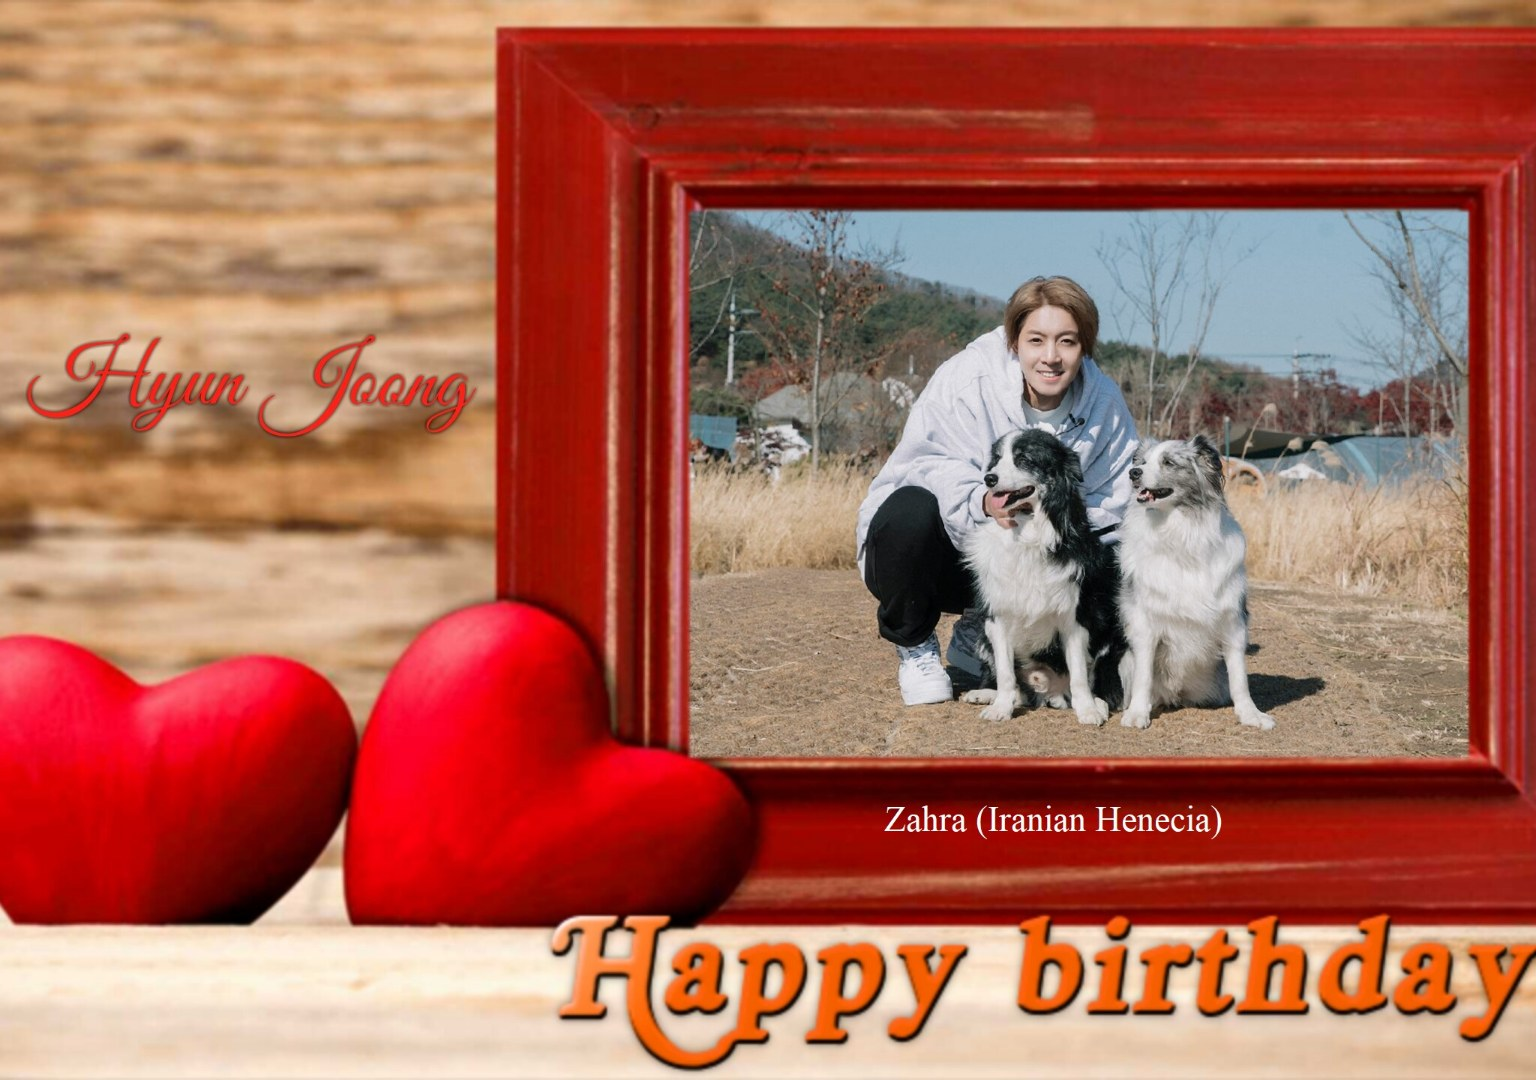 (My Fanart from Happy 32th Birtday of KHJ (3